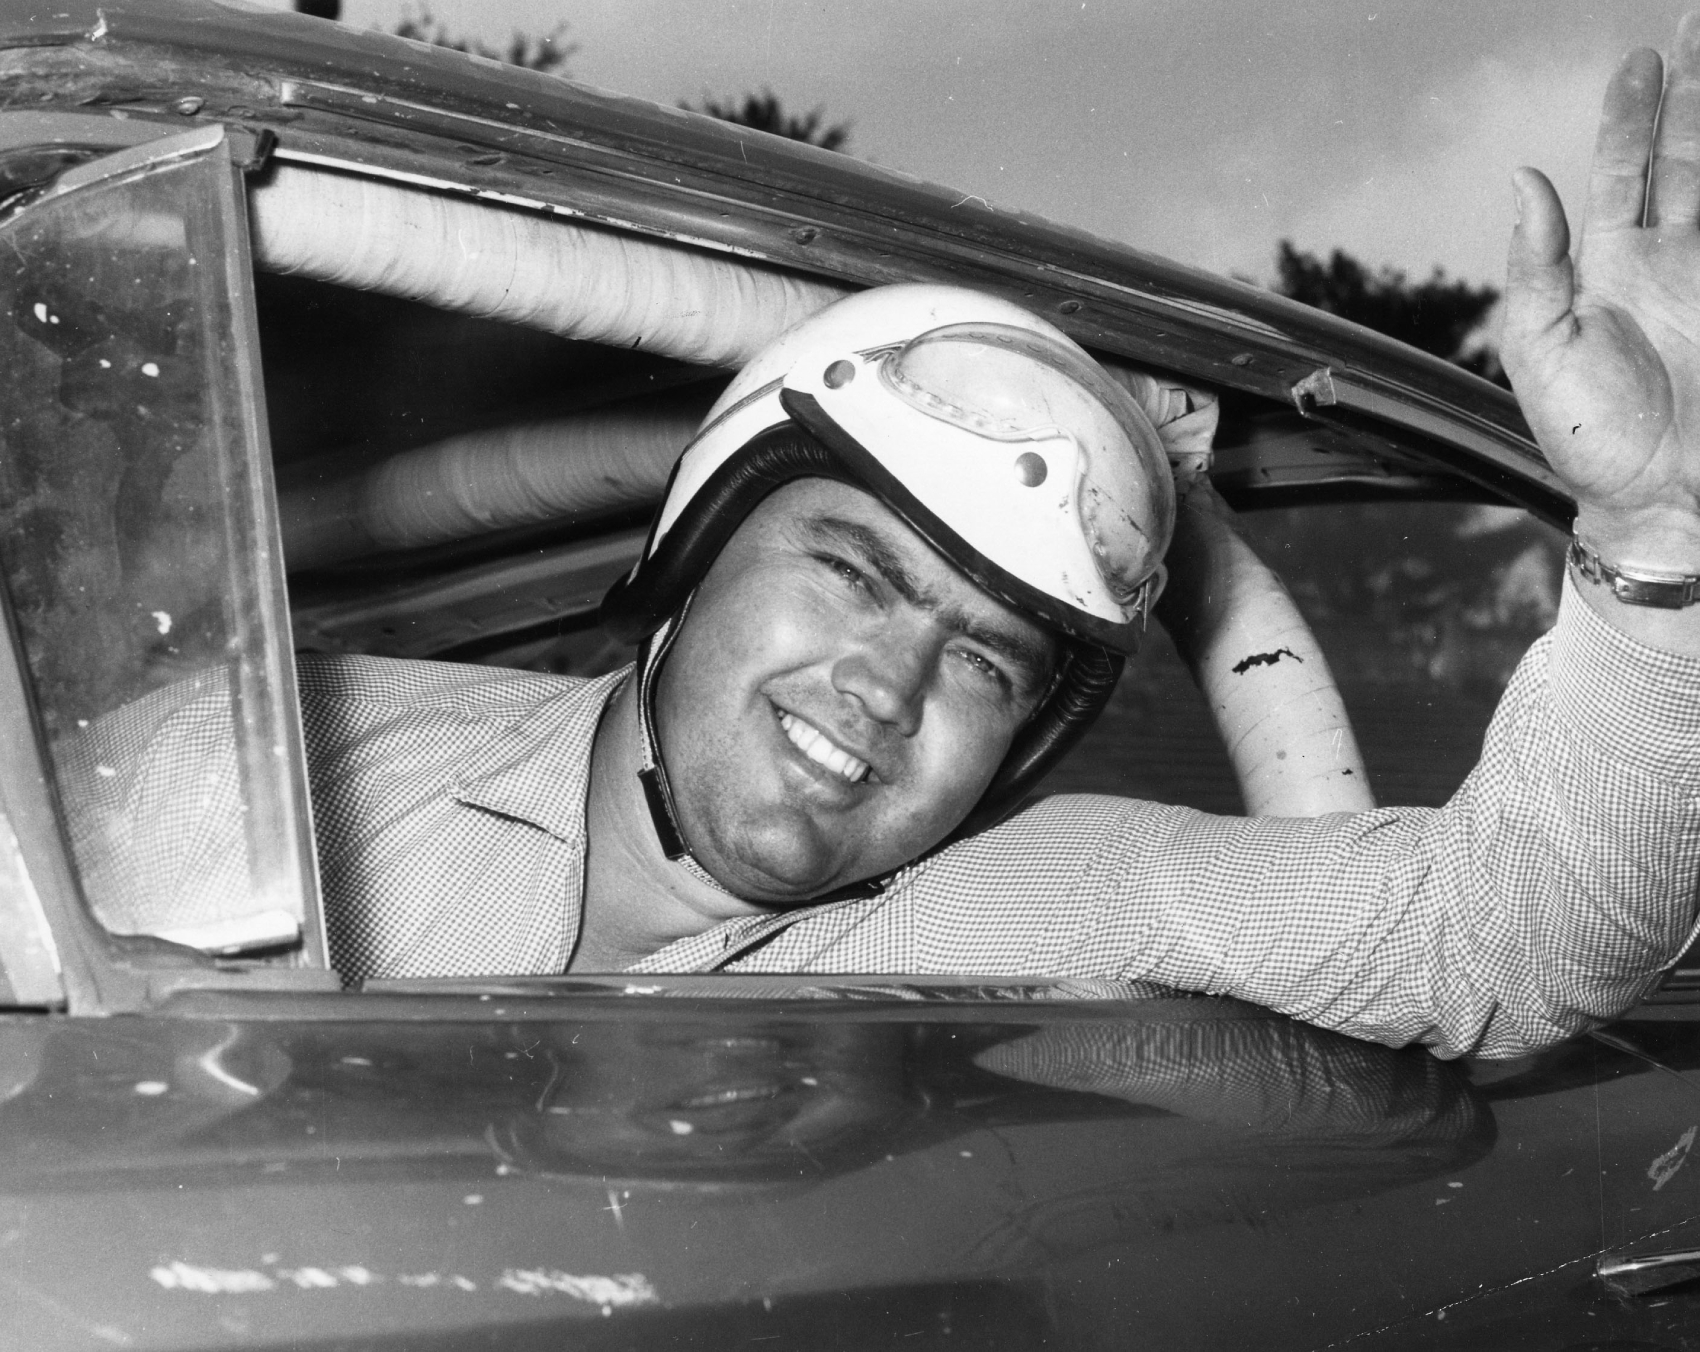 NASCAR legend Junior Johnson lived a pretty interesting life. He even went to prison for 'moonshining' and Ronald Reagan later pardoned him.